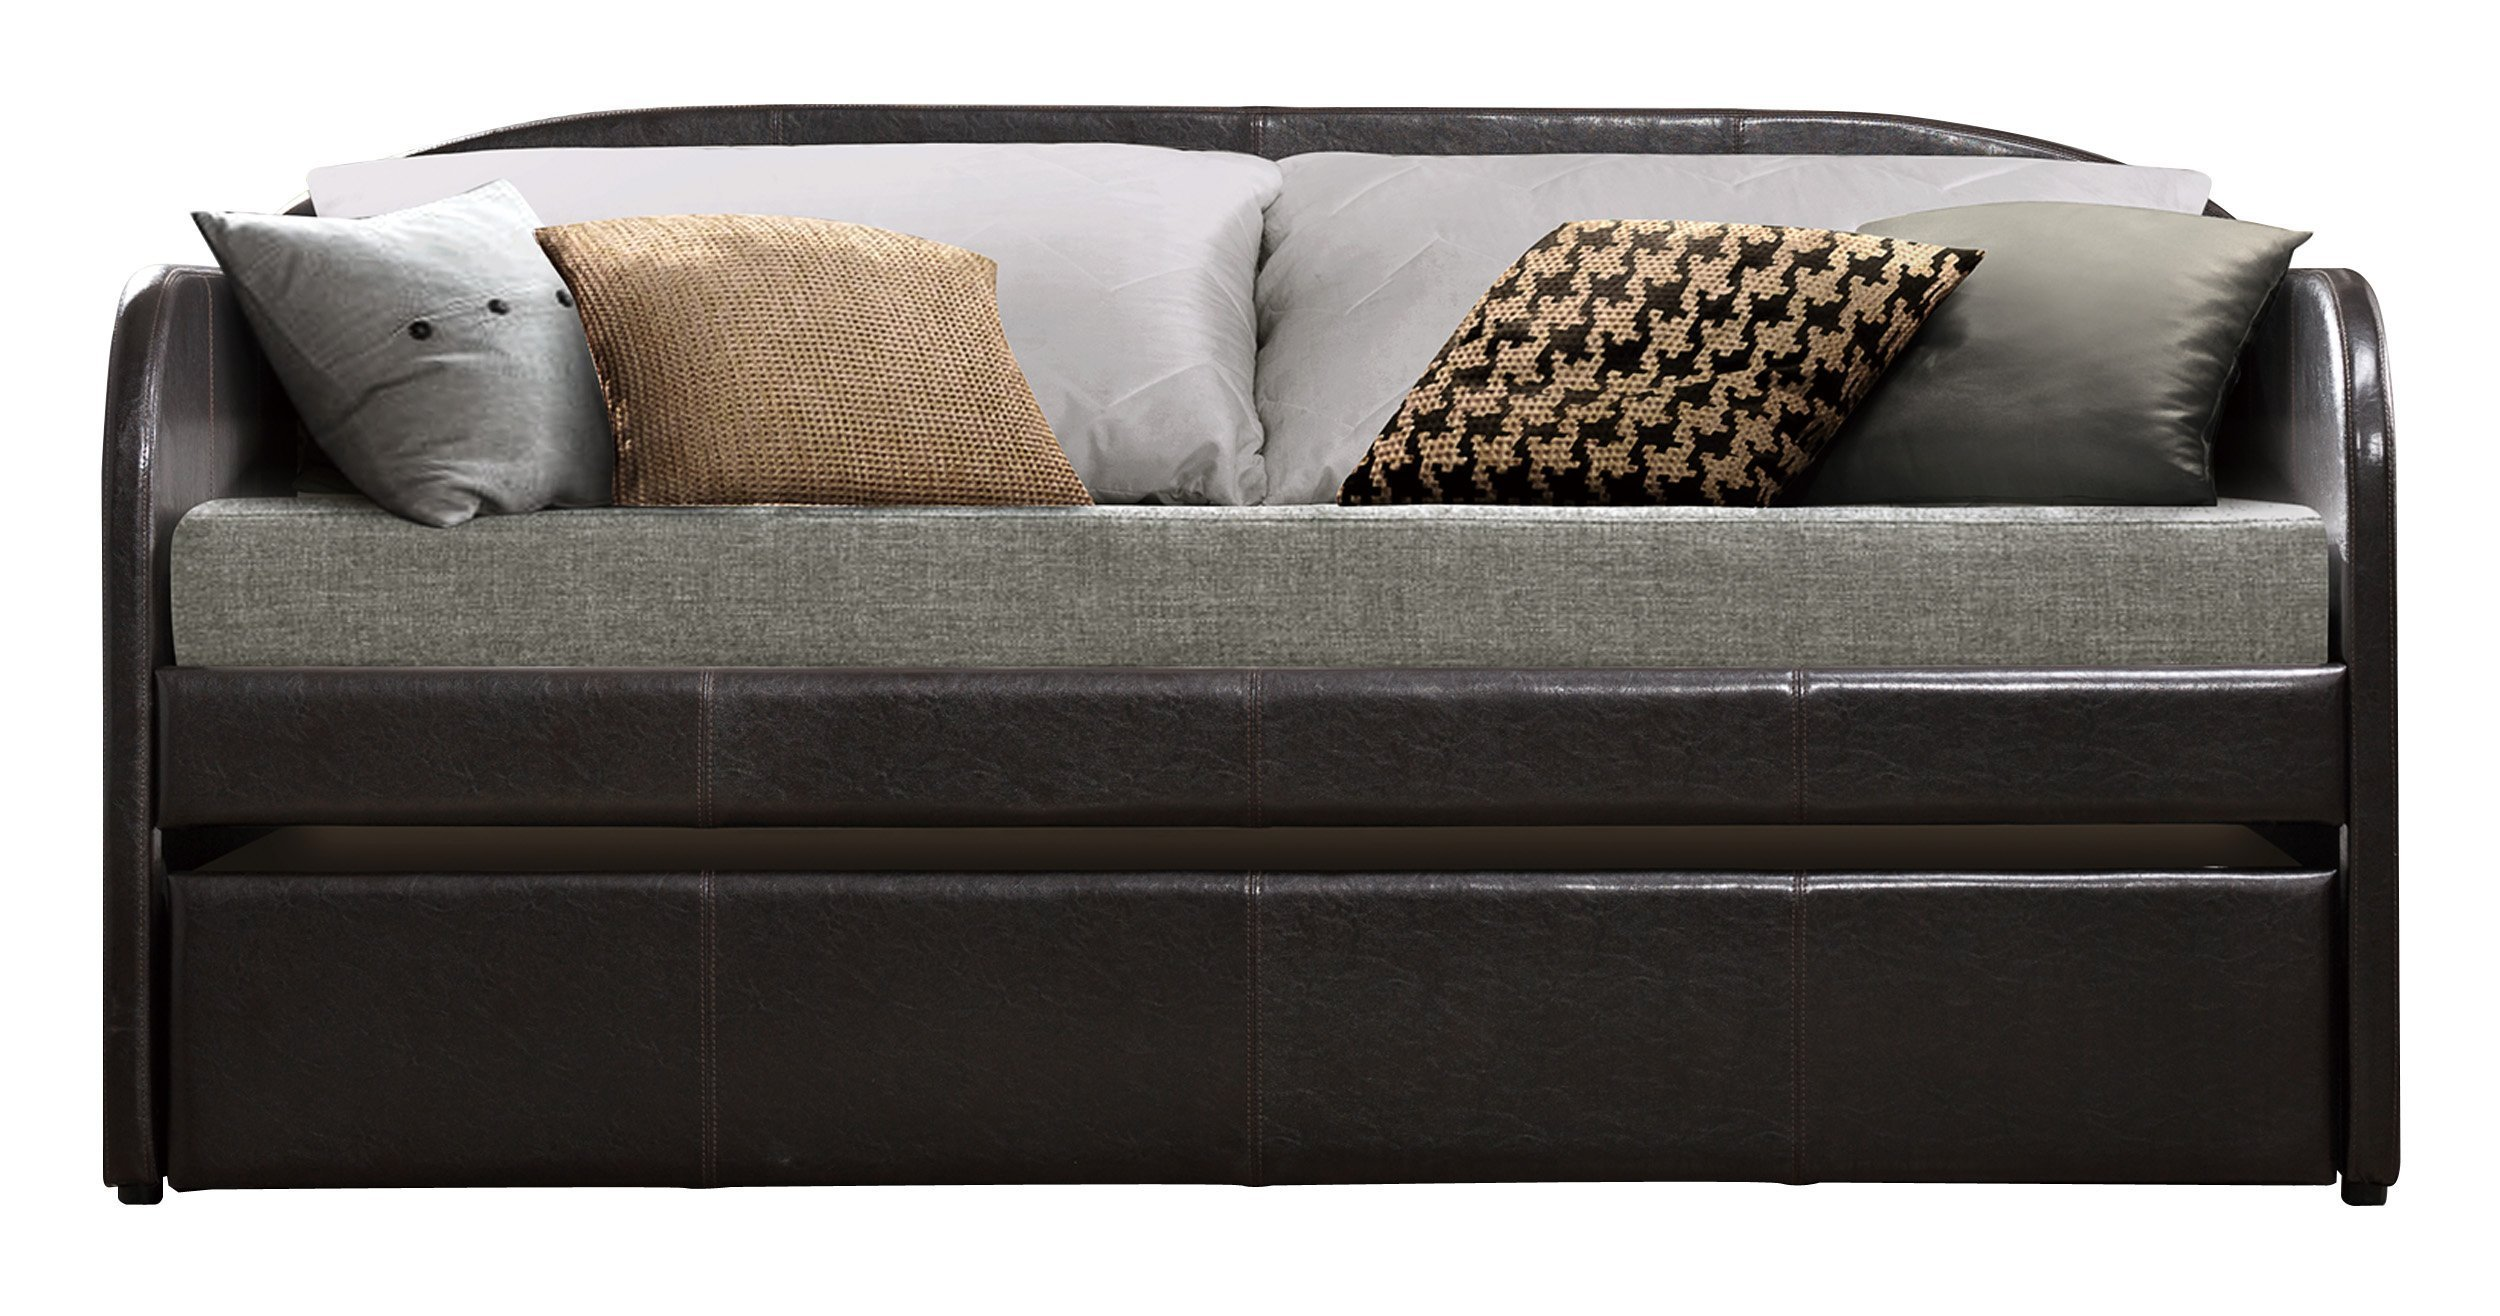 Homelegance Modern Design Daybed with Trundle Fully Upholstered Polyester, Twin, Grey